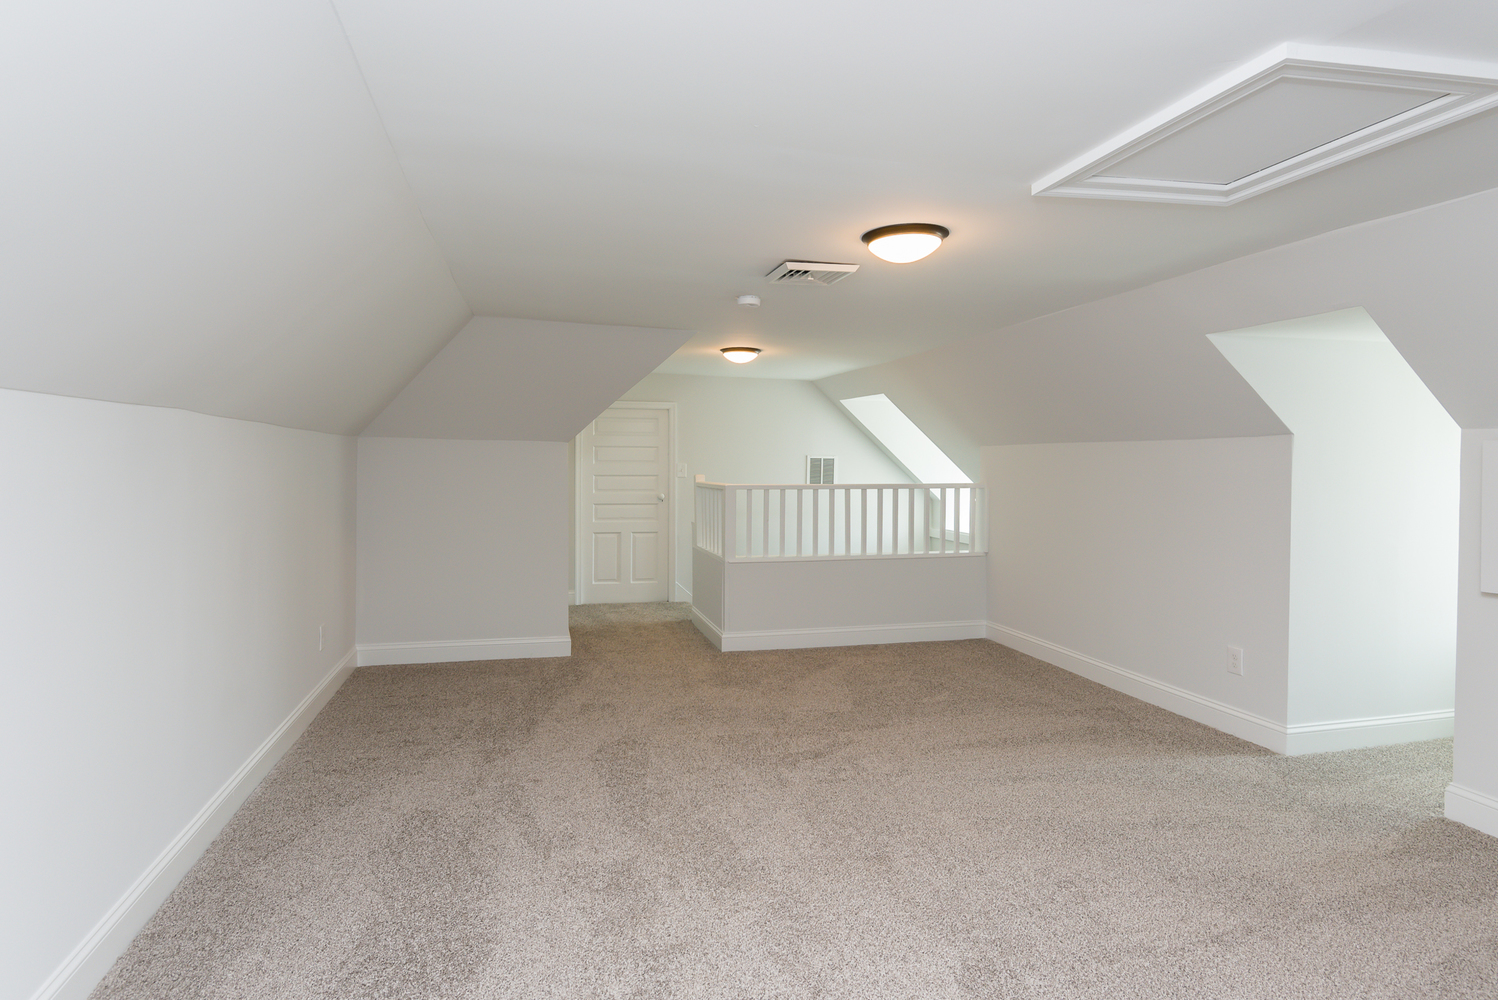 attic_step_room_1_of_1_.jpg